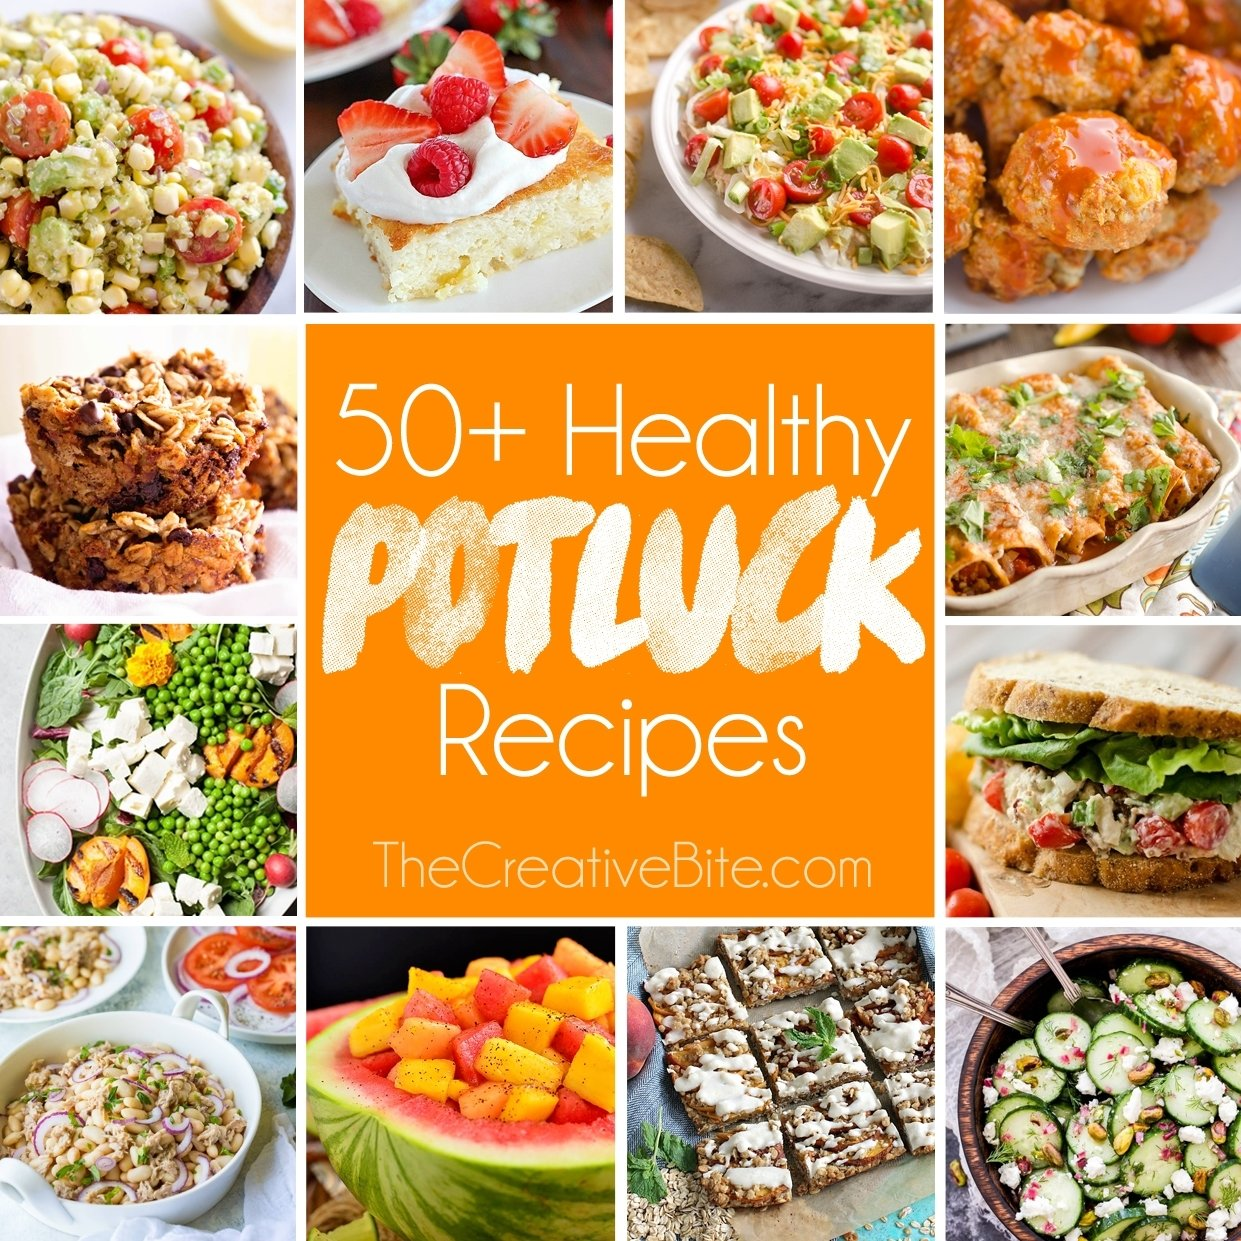 10 Stylish Pot Luck Ideas For Work 50 light healthy potluck recipes 2021